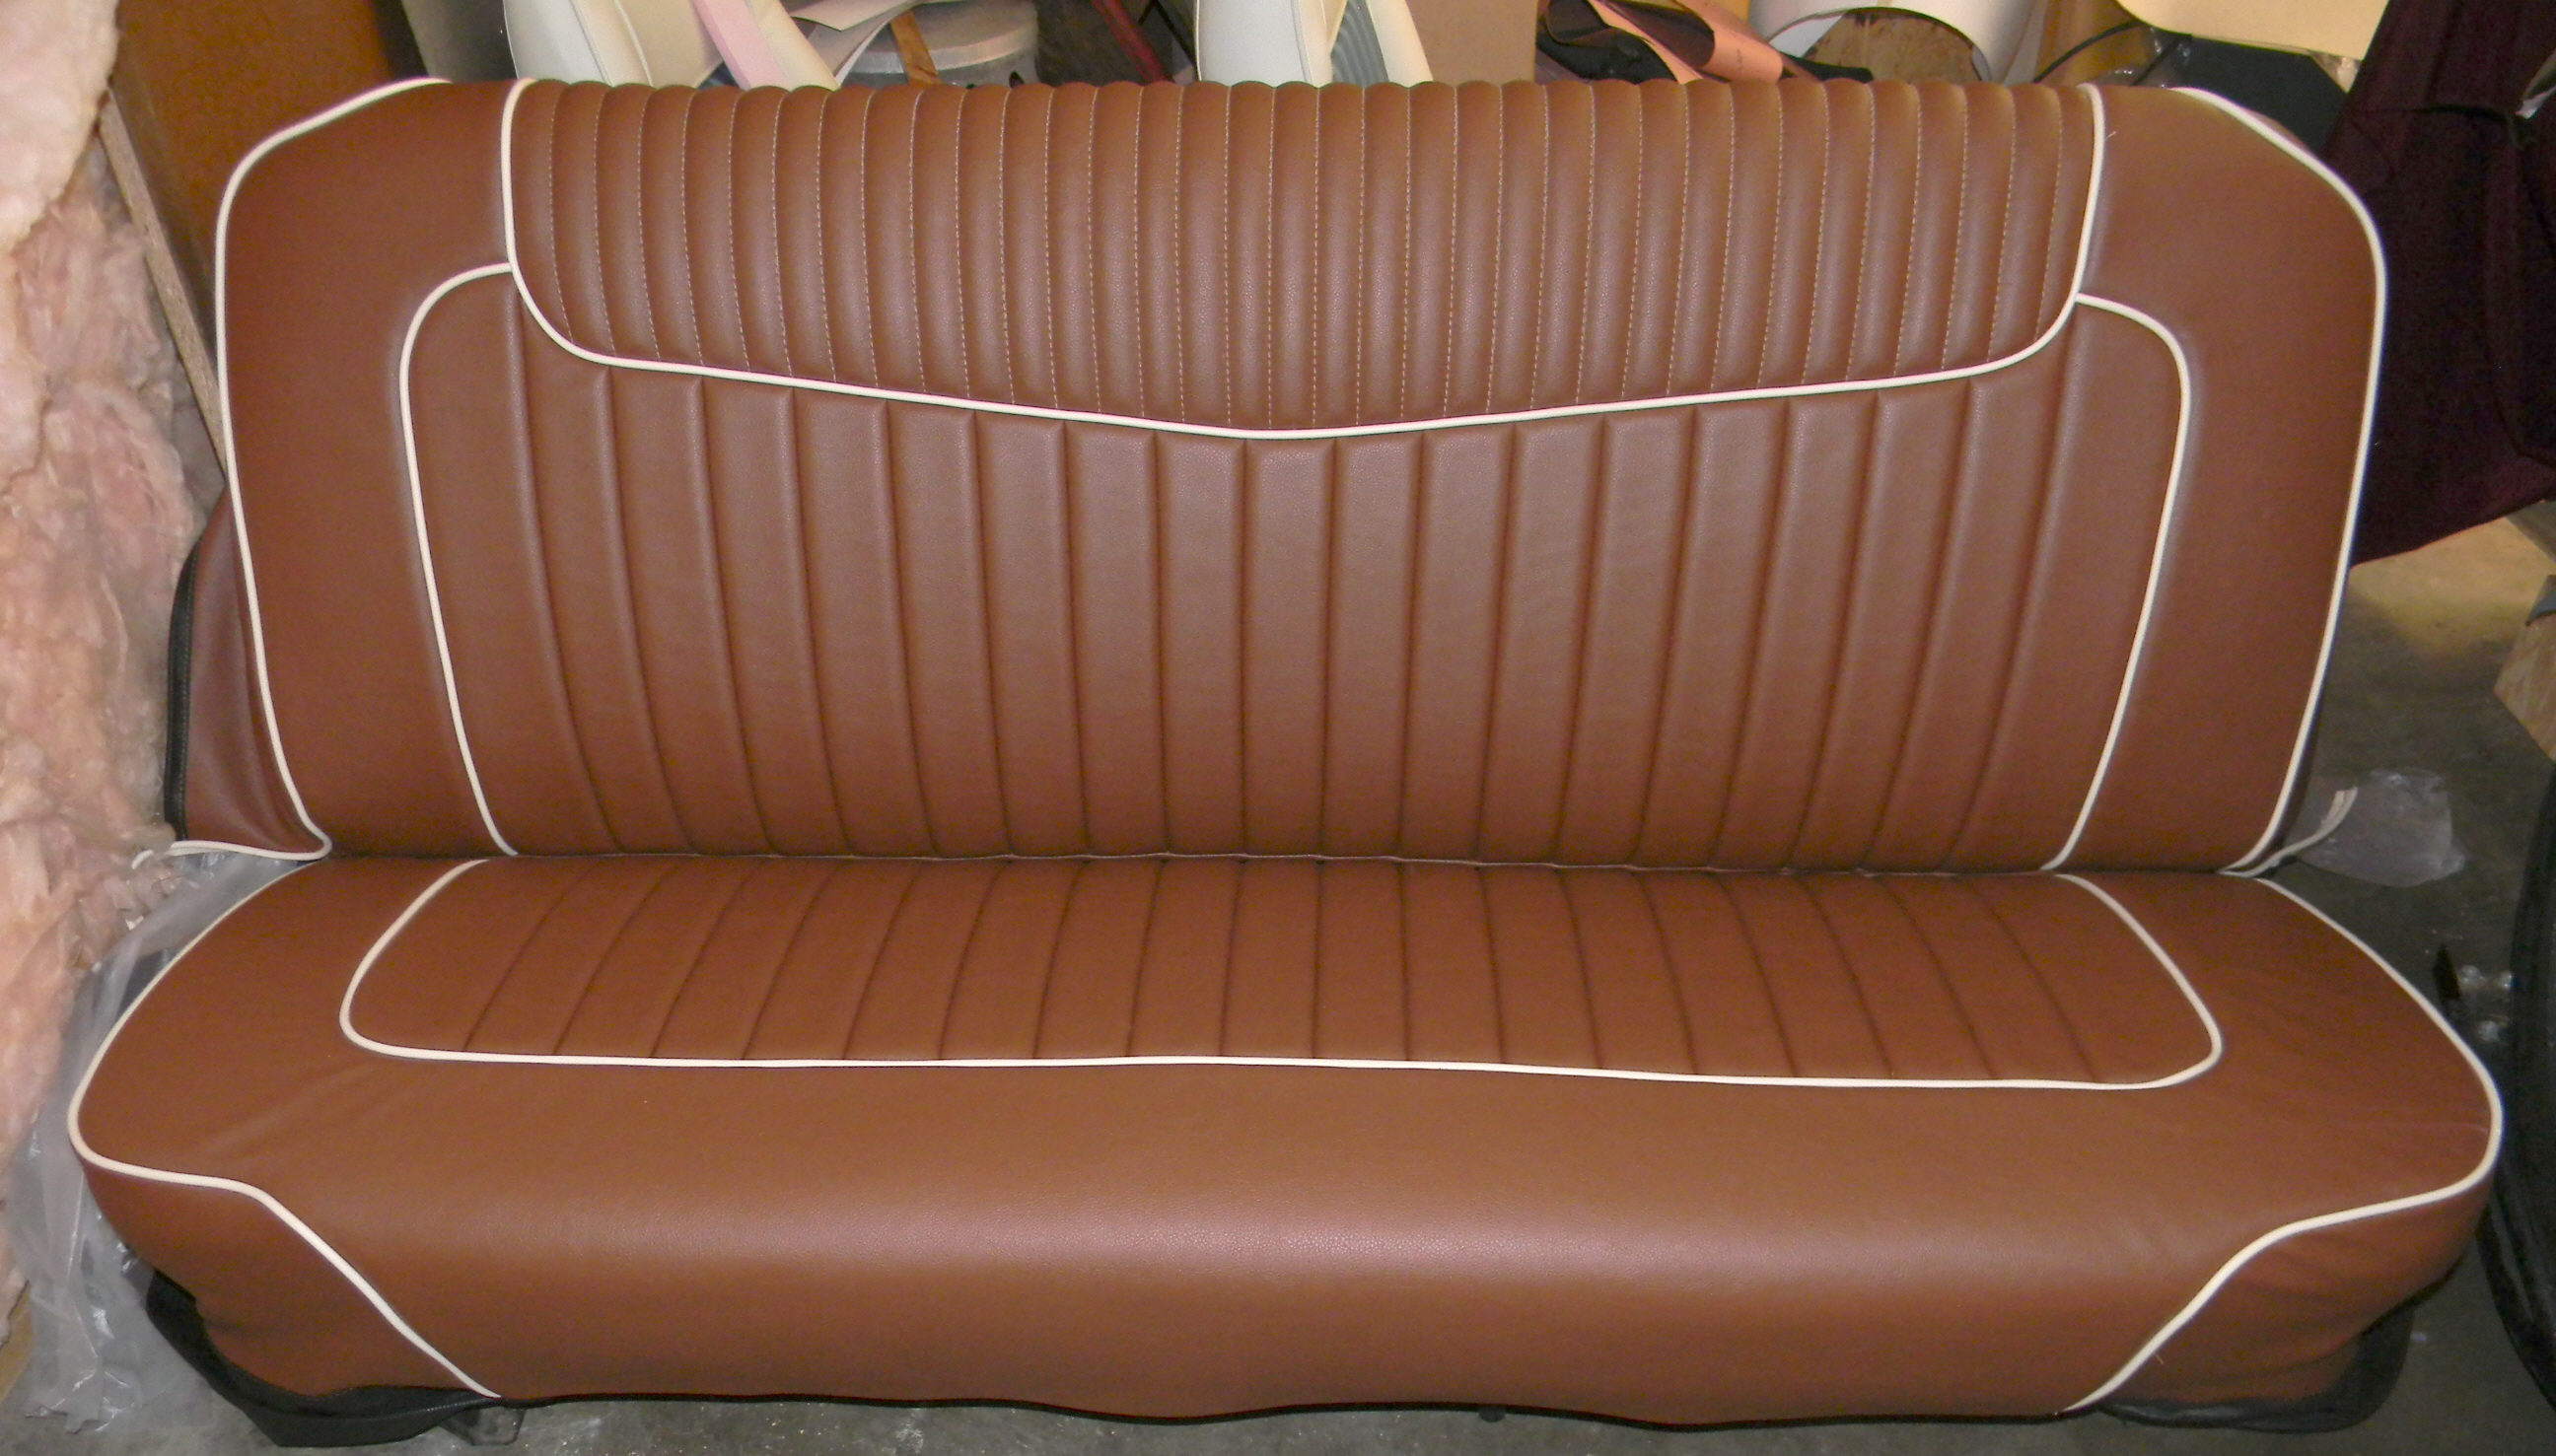 Chevy truck seat cover large v bar https www ricksupholstery com truckseatcovers html